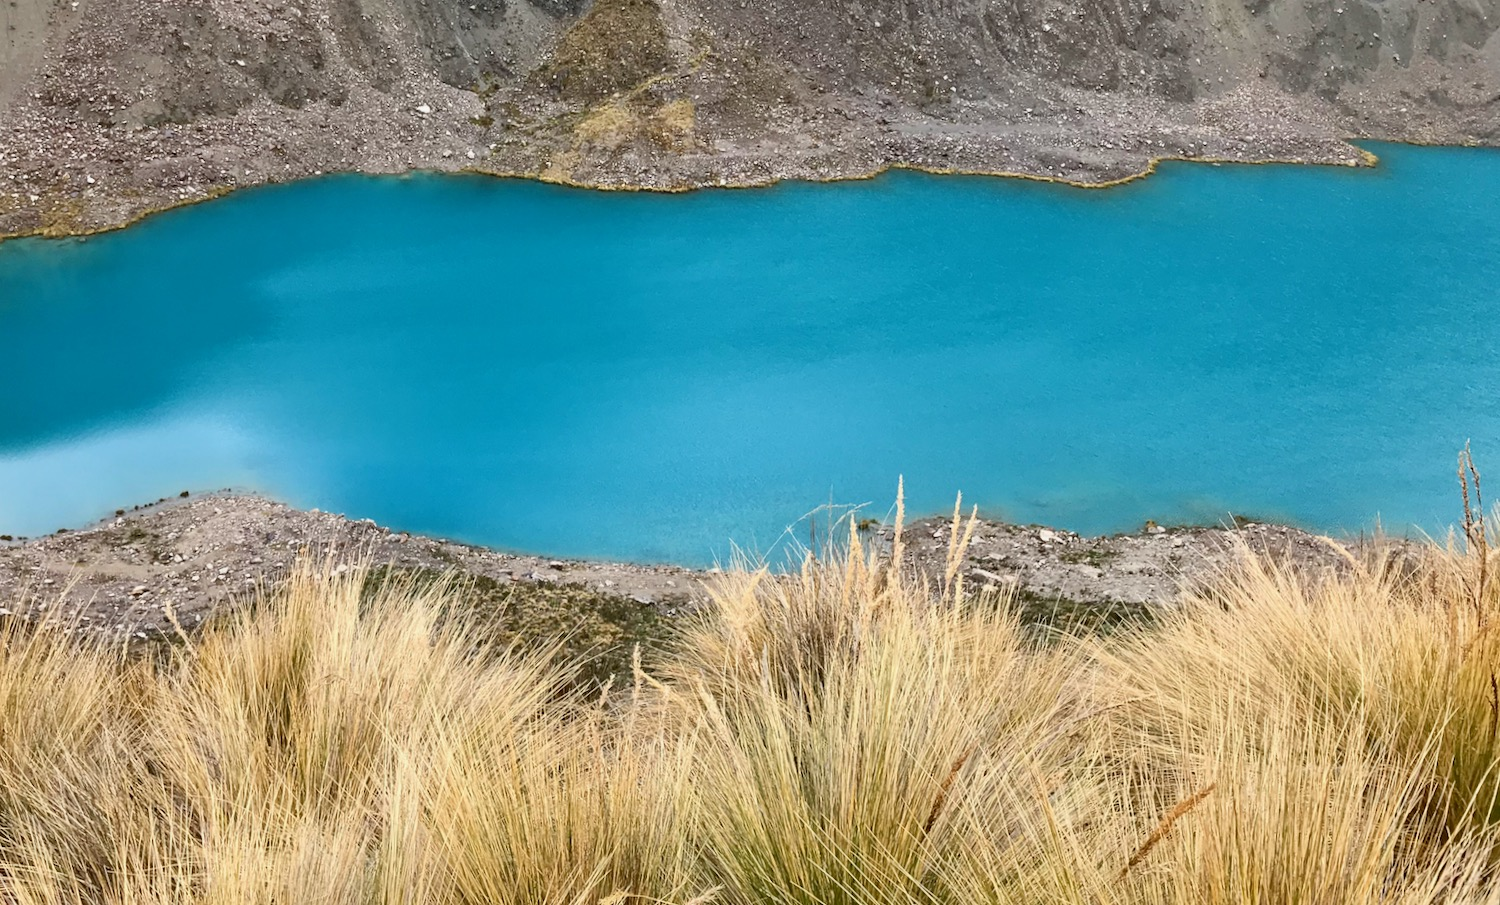 I miss the unique azure blue lakes of the high Andes in Central Peru.